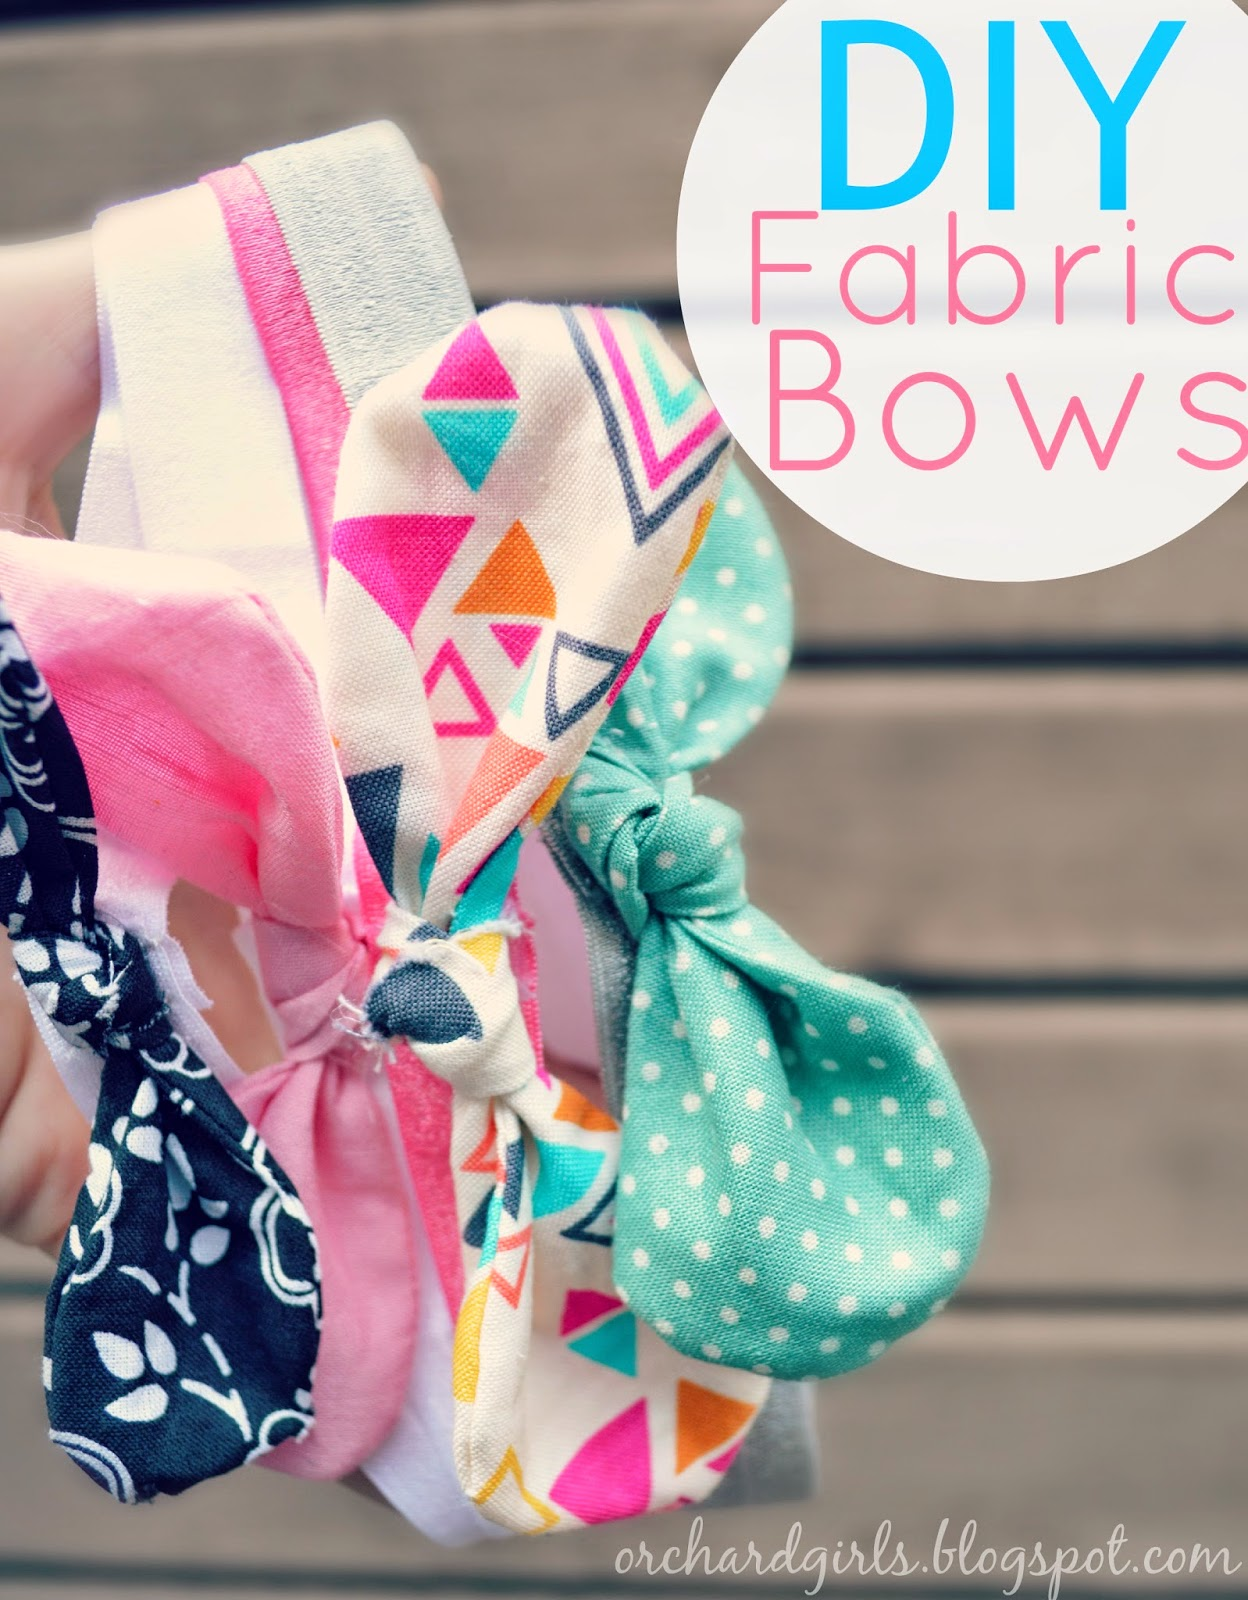 DIY Fabric Bows and headbands